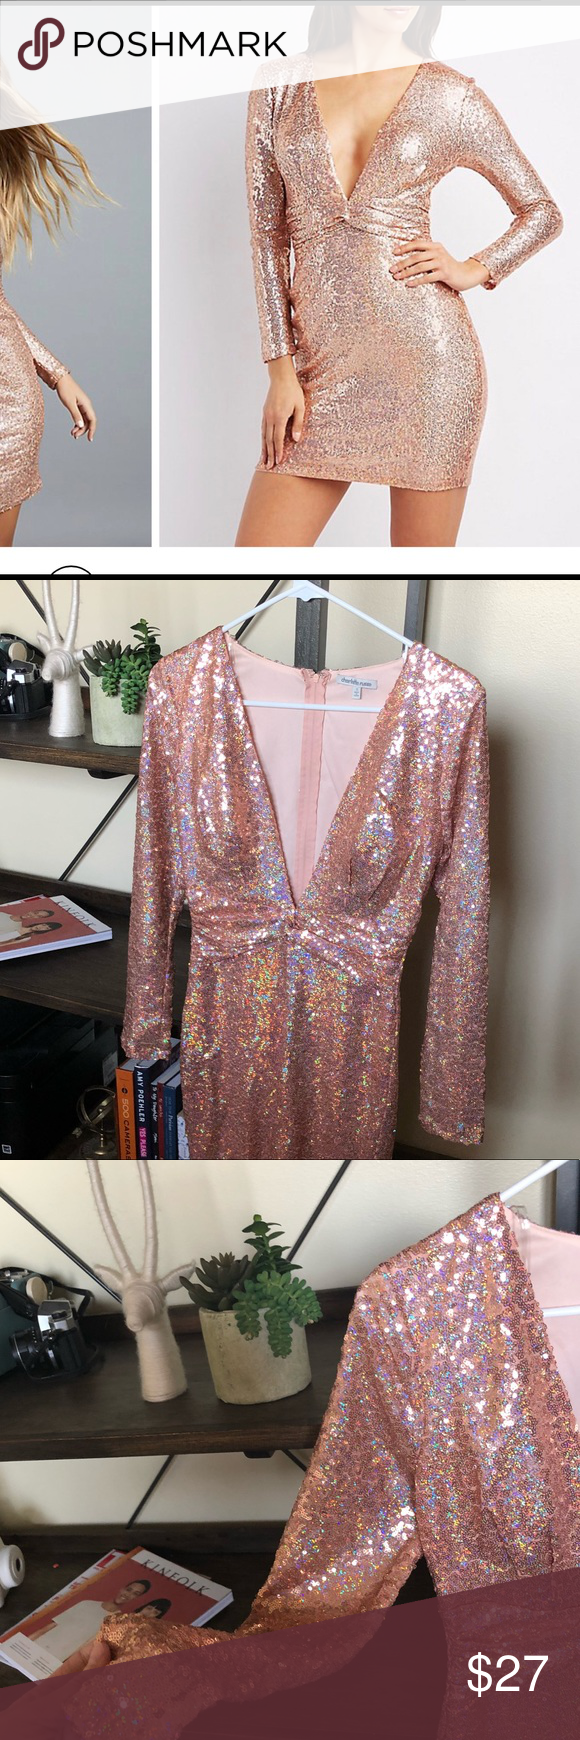 Rose gold sequin dress charlotte russe